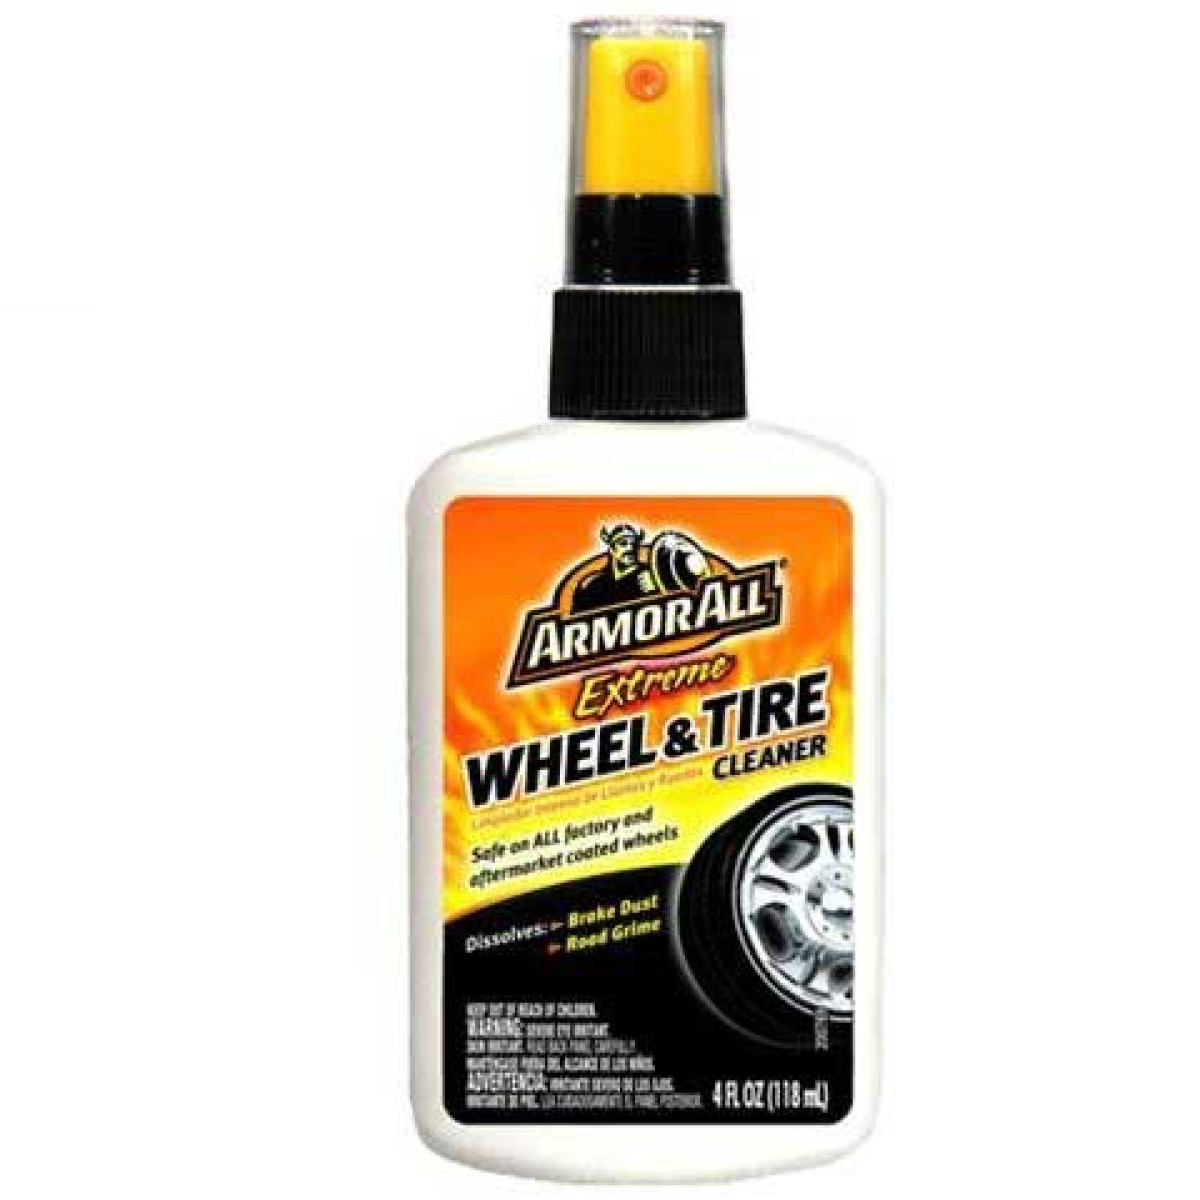 Extreme Wheel & Tire Cleaner Armor All